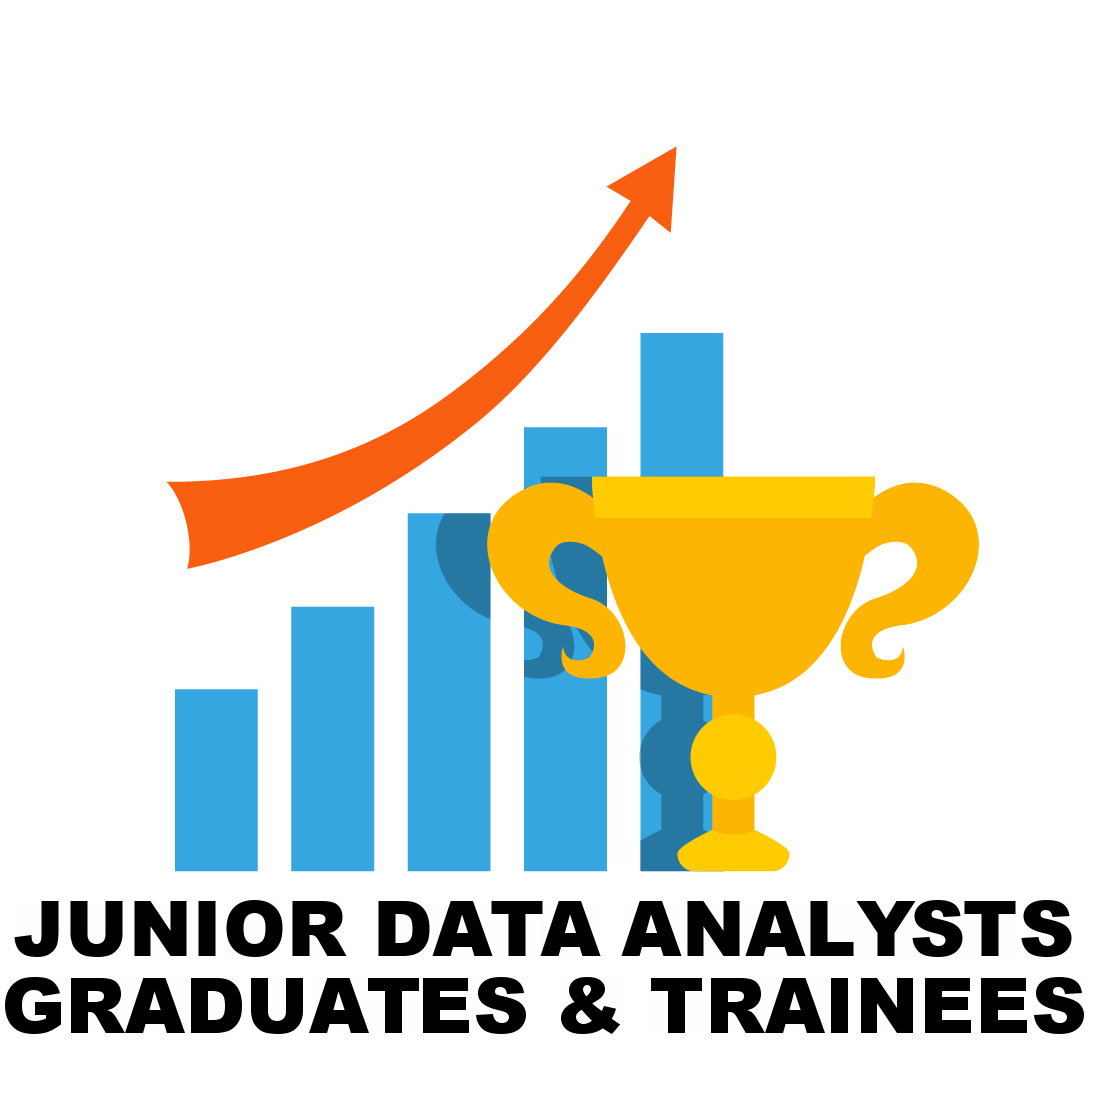 who:  Junior data analyts, graduates & trainees   what:  we support a constant flow of the highest calibre,up & coming ANALYSTS who ARE DRIVEN &MOTIVATED TO BREAK THE MARKET & build a career data   where:  Established environments that offer the appropriate work & are able to support the professional development of its team   when:  Recent grads with 1-2 yrs exp programming in SQL, SAS or R & have a genuine passion for building a career in data analytics     MARKET RATE: $60-80K